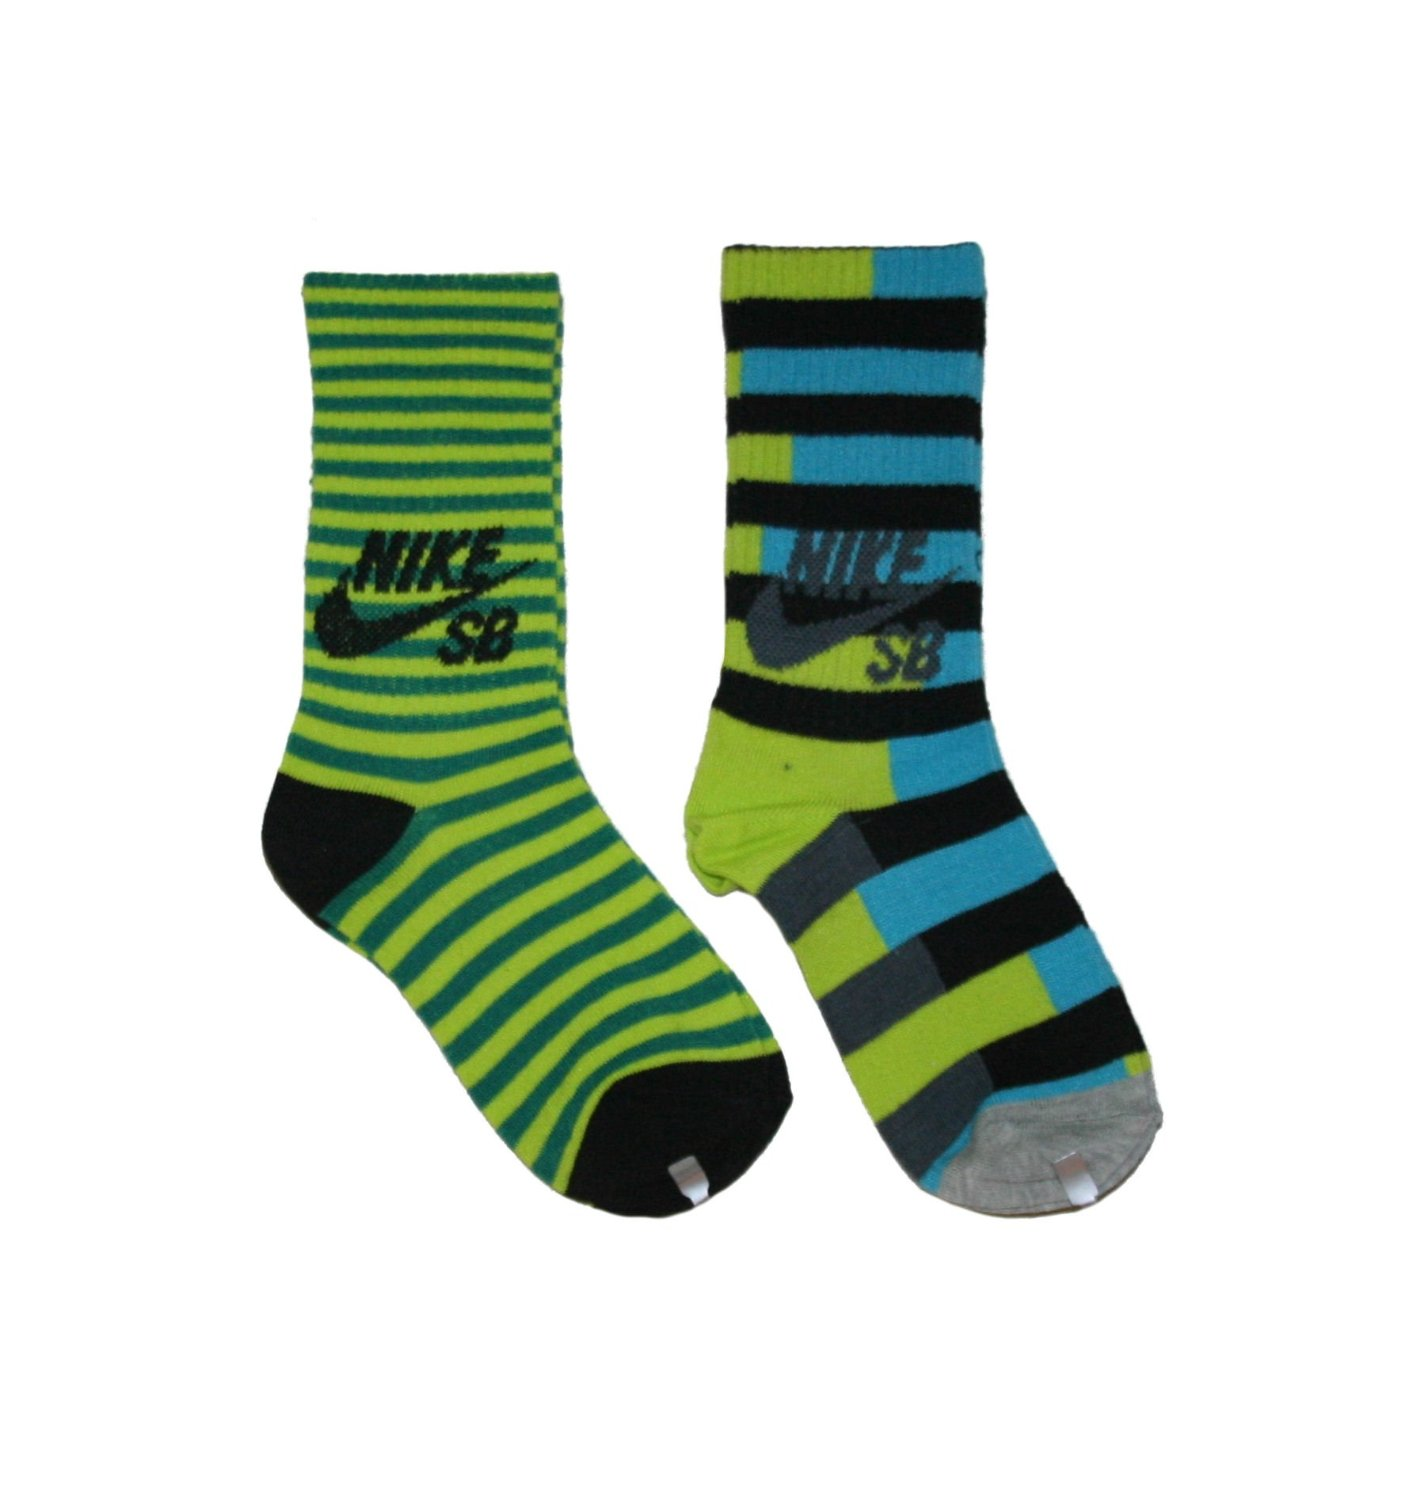 Nike SB 2 Pairs/Pack Boy's Crew Socks, Youth, Bright Green 3Y-5Y